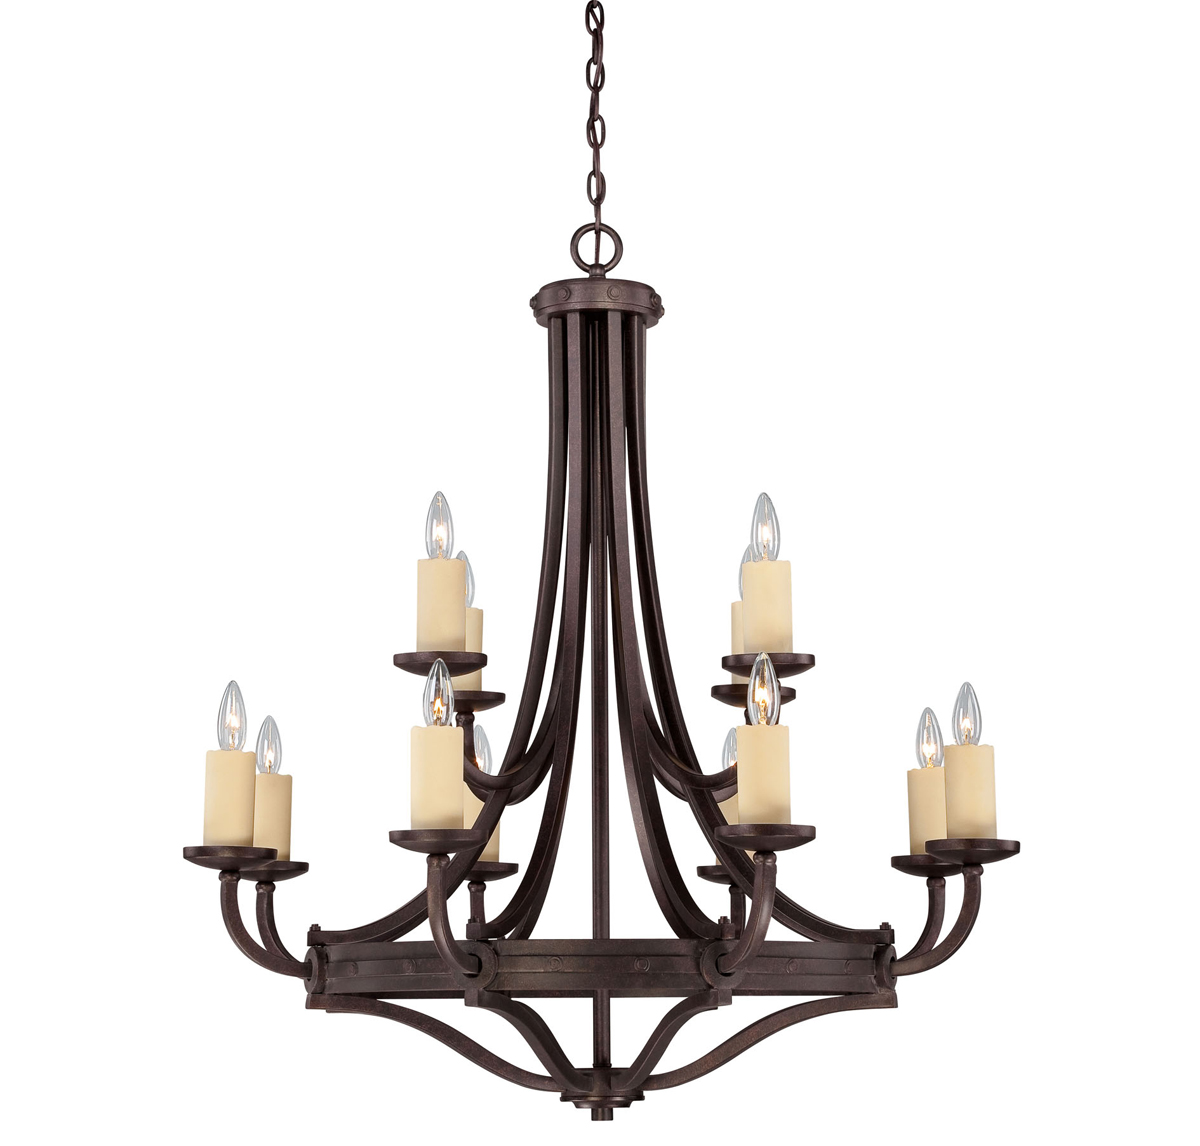 Savoy House (1-2013-12-05) Elba 12 Light Chandelier in Oiled Copper Finish